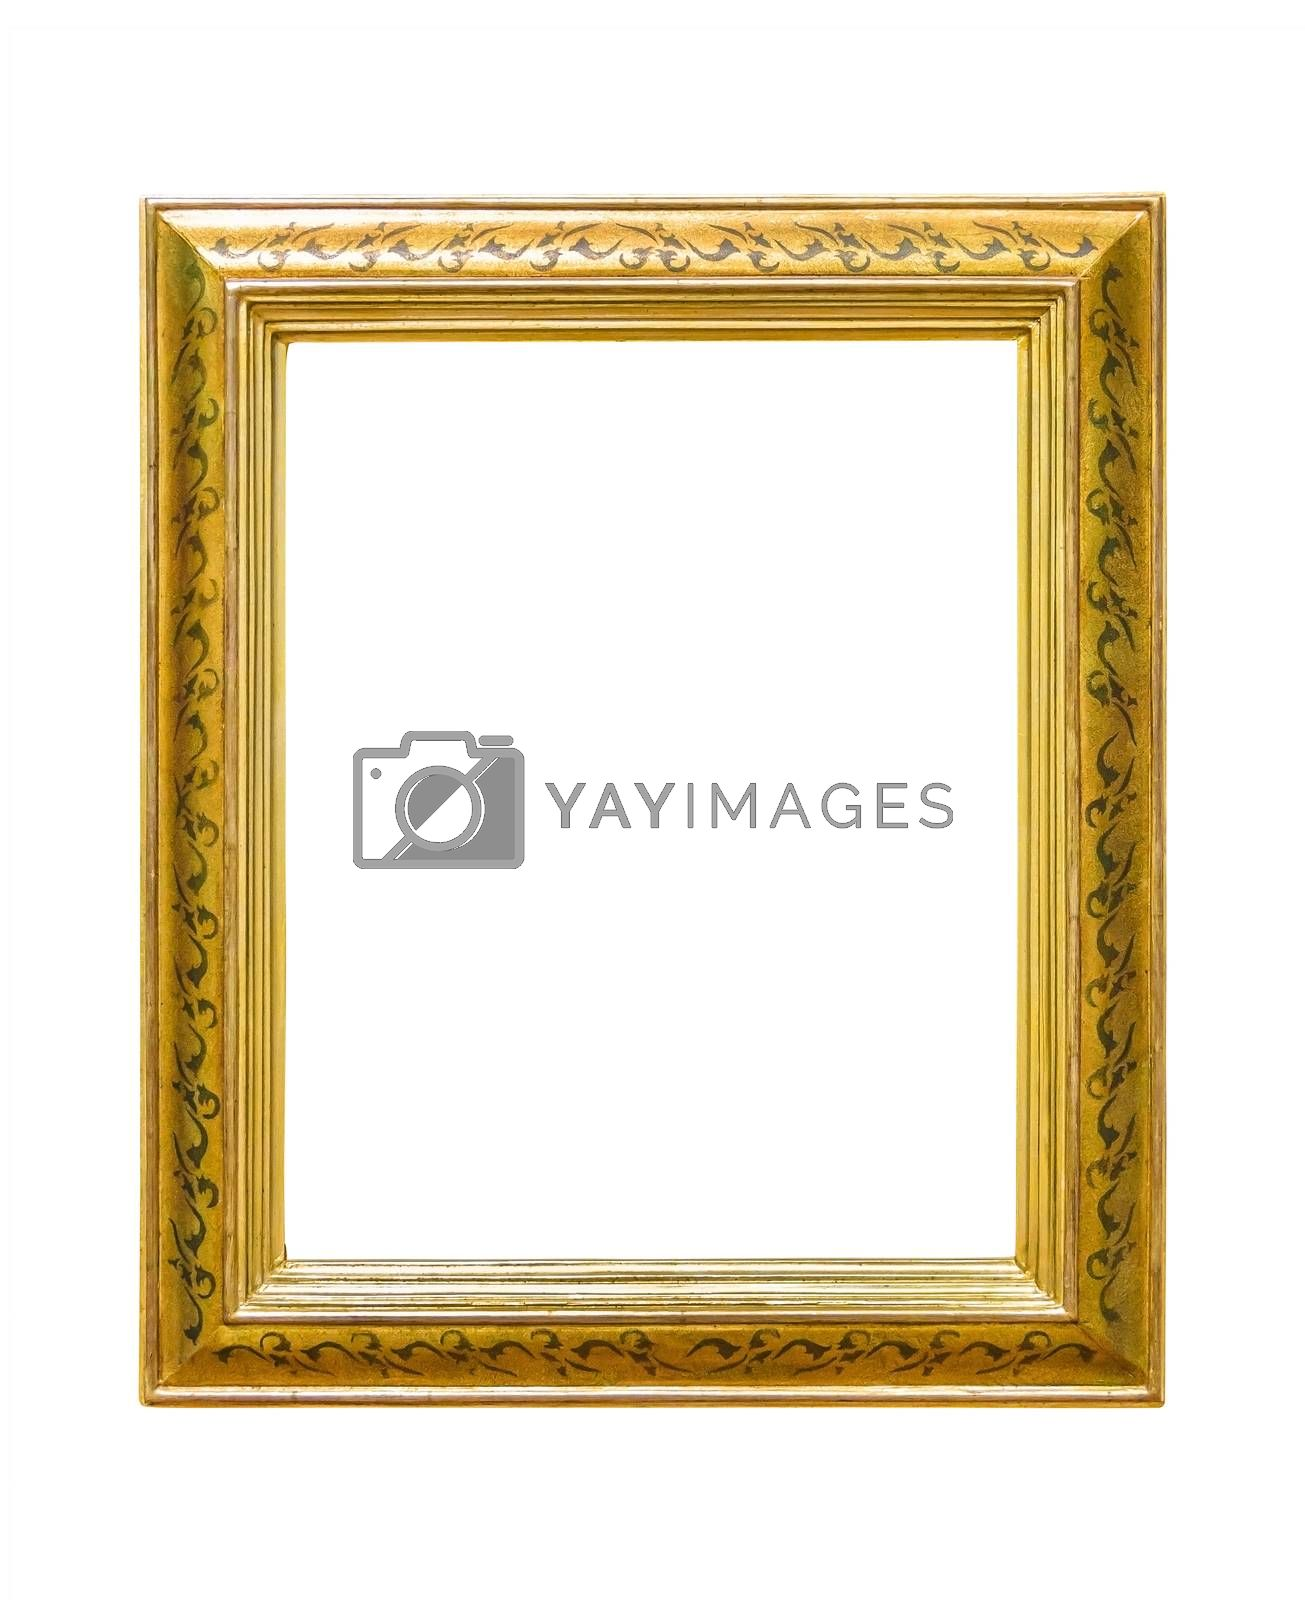 Royalty free image of Rectangle decorative golden picture frame by mkos83